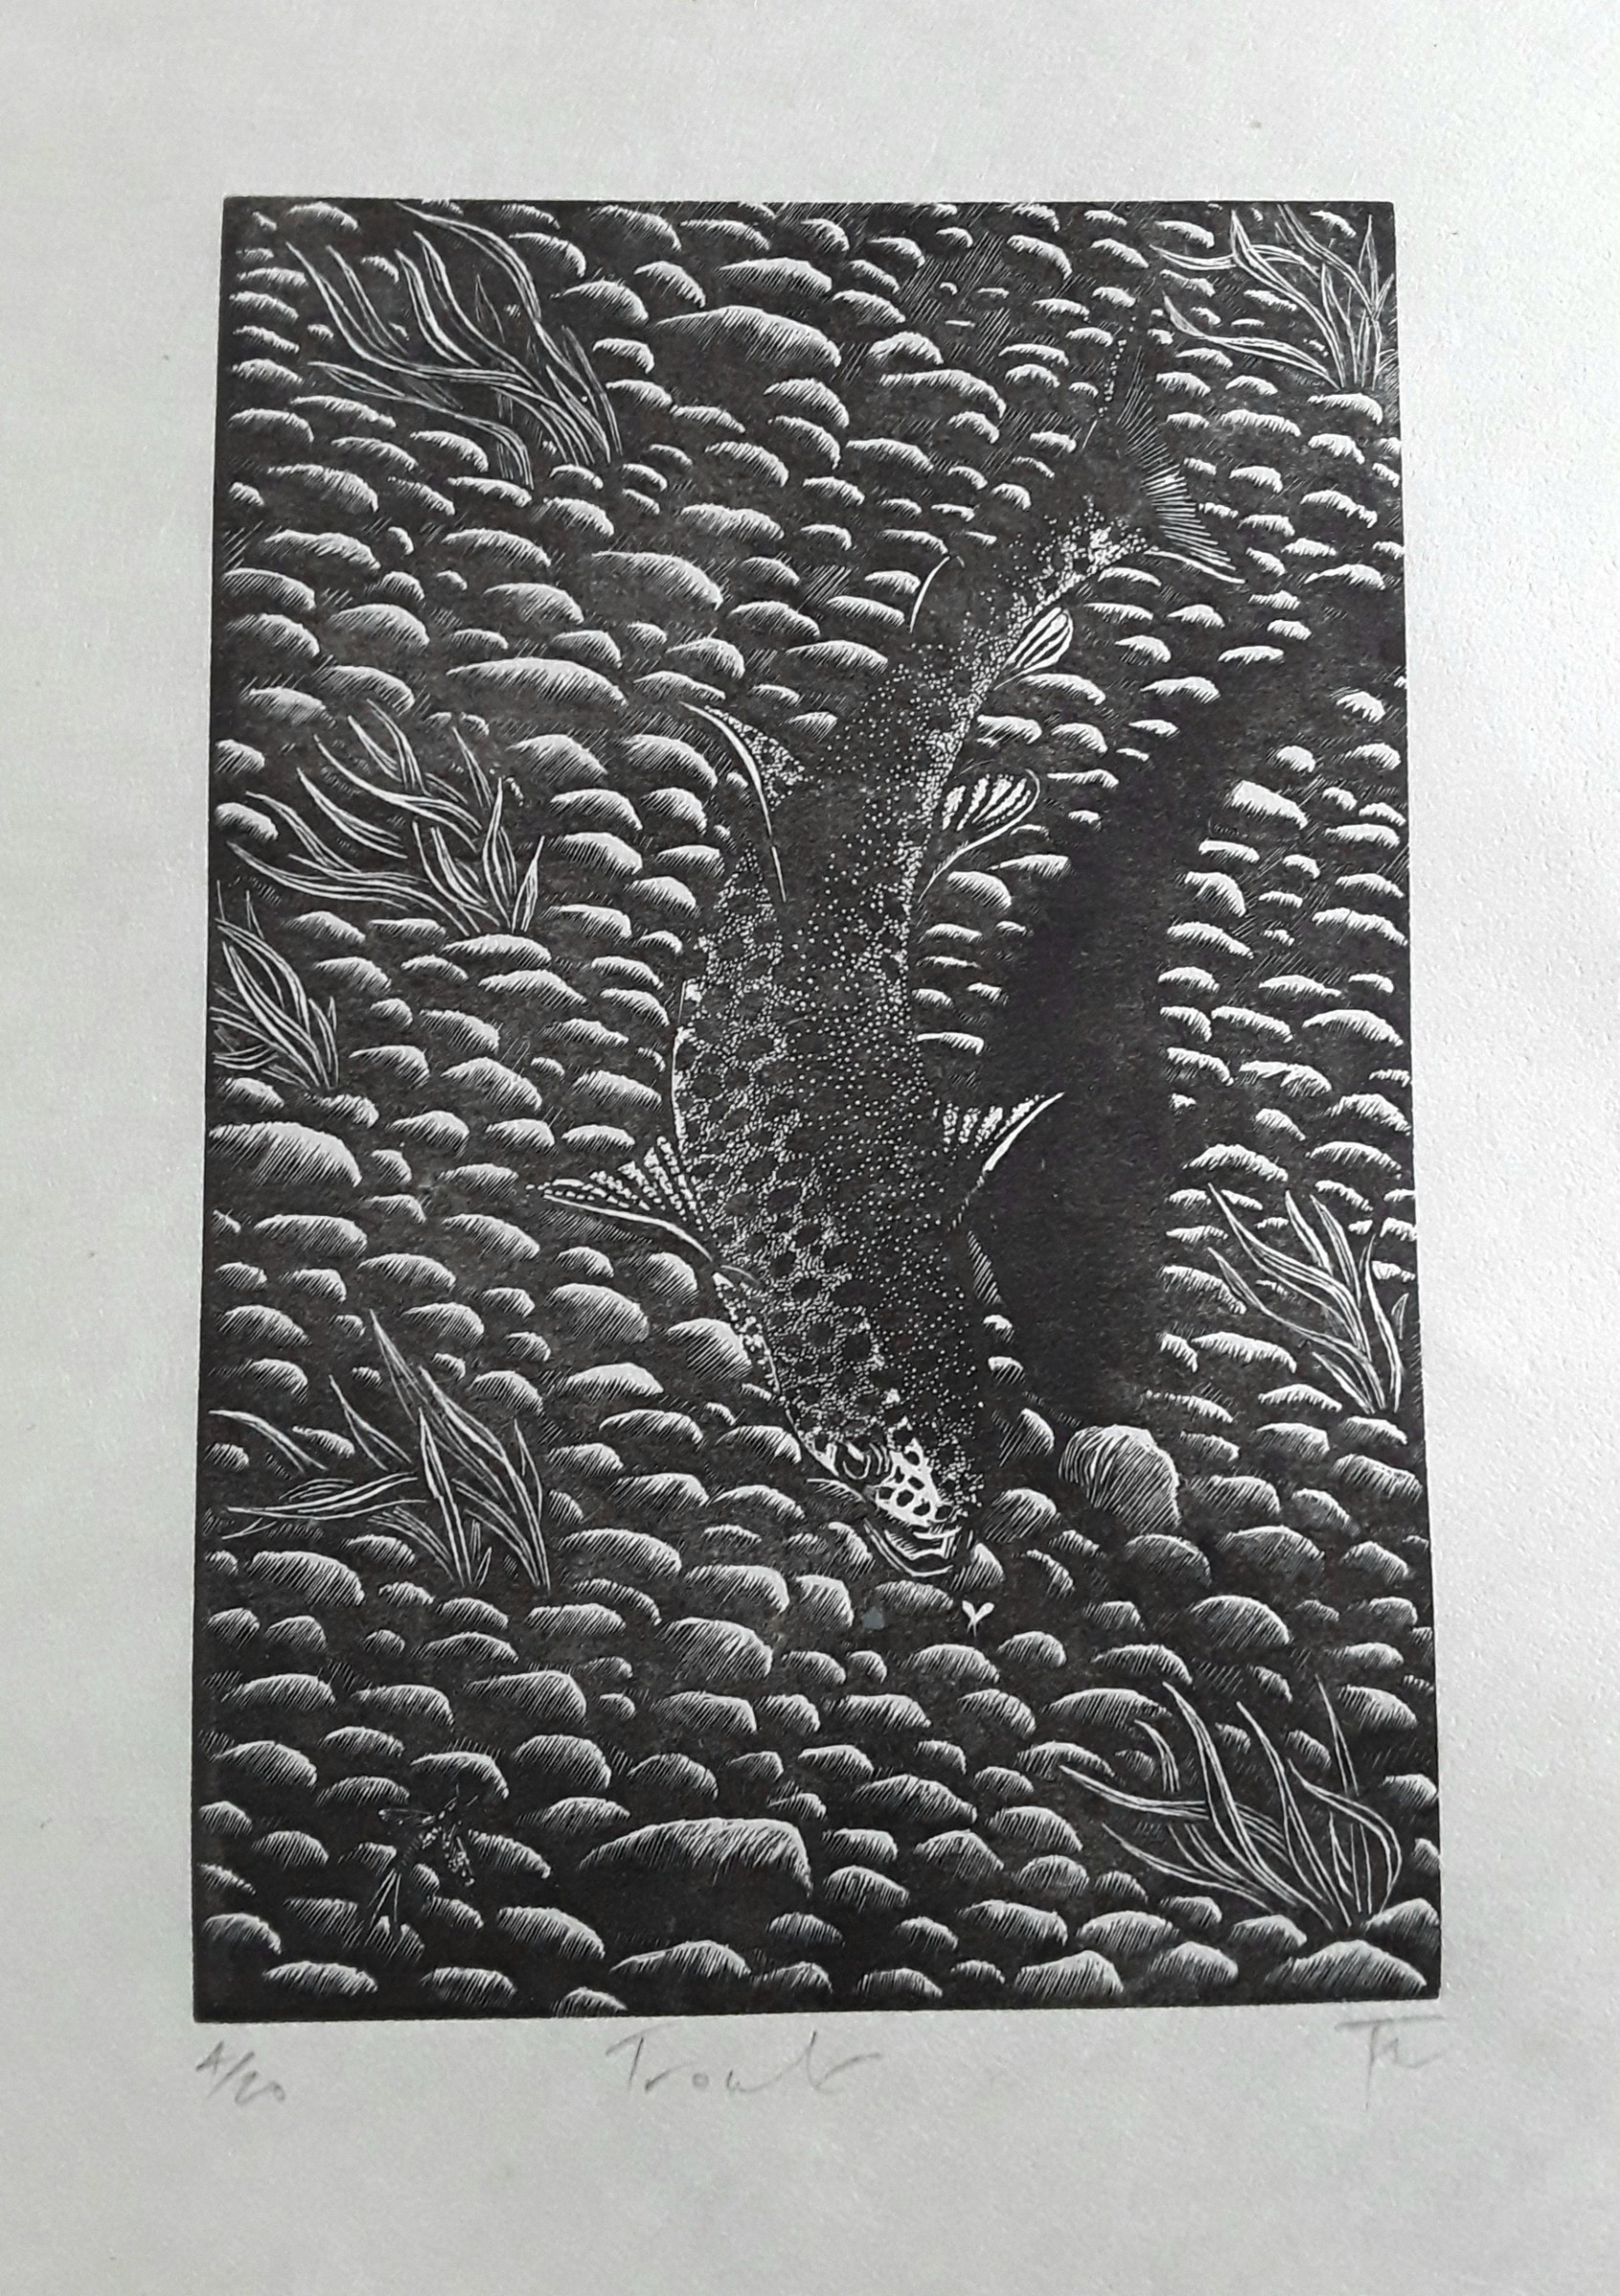 "<span class=""link fancybox-details-link""><a href=""/exhibitions/18/works/image_standalone1049/"">View Detail Page</a></span><p>Nikki Tait</p><p>Trout</p><p>wood engraving</p><p>27 x 33cm</p><p>£110 framed</p><p>£90 unframed</p>"